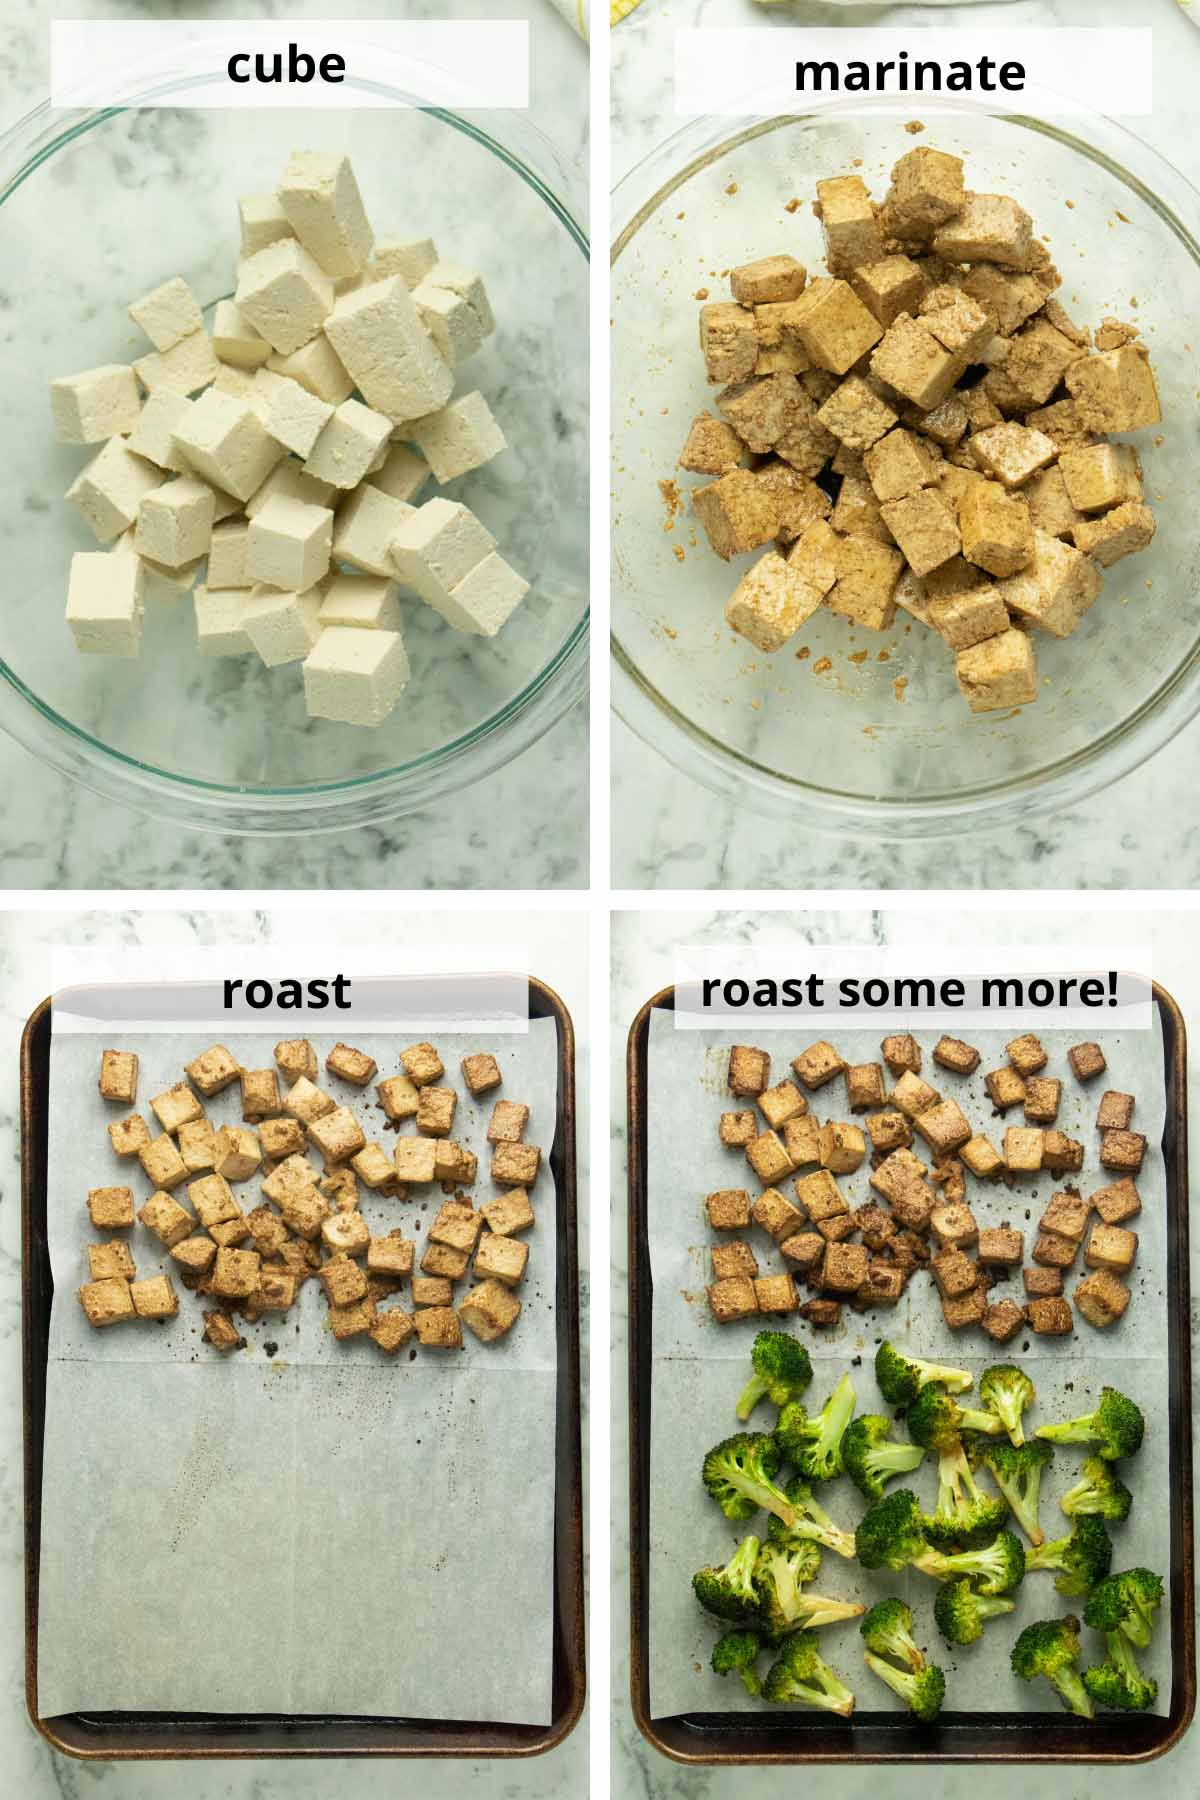 process collage showing tofu diced and marinating, then roasted and finished roasting with the broccoli on the pan